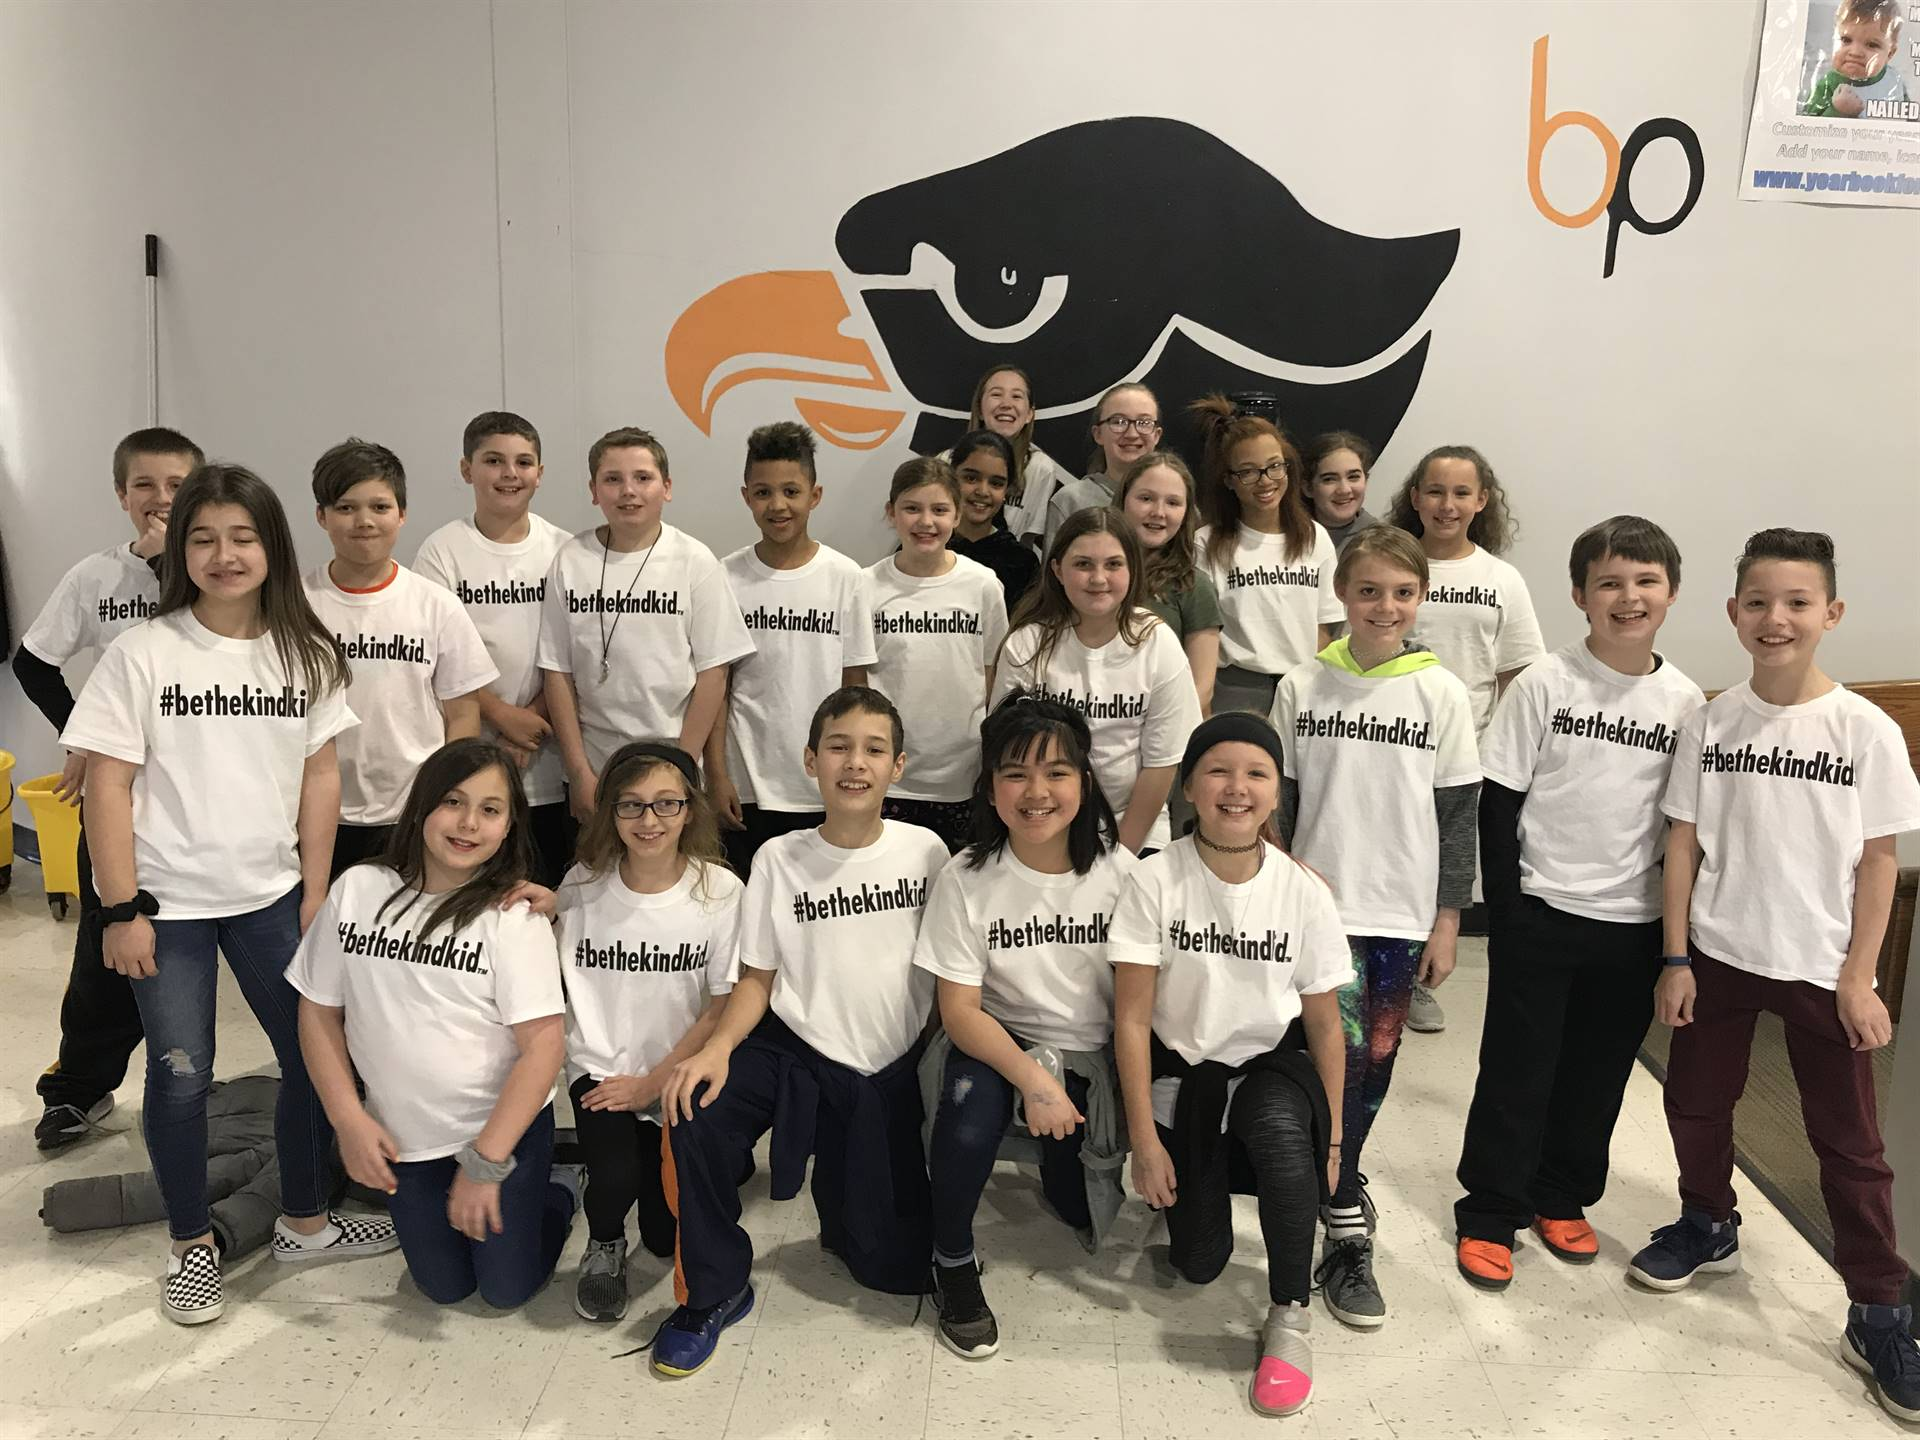 Team Apollo students wearing their #BeTheKindKid t-shirts